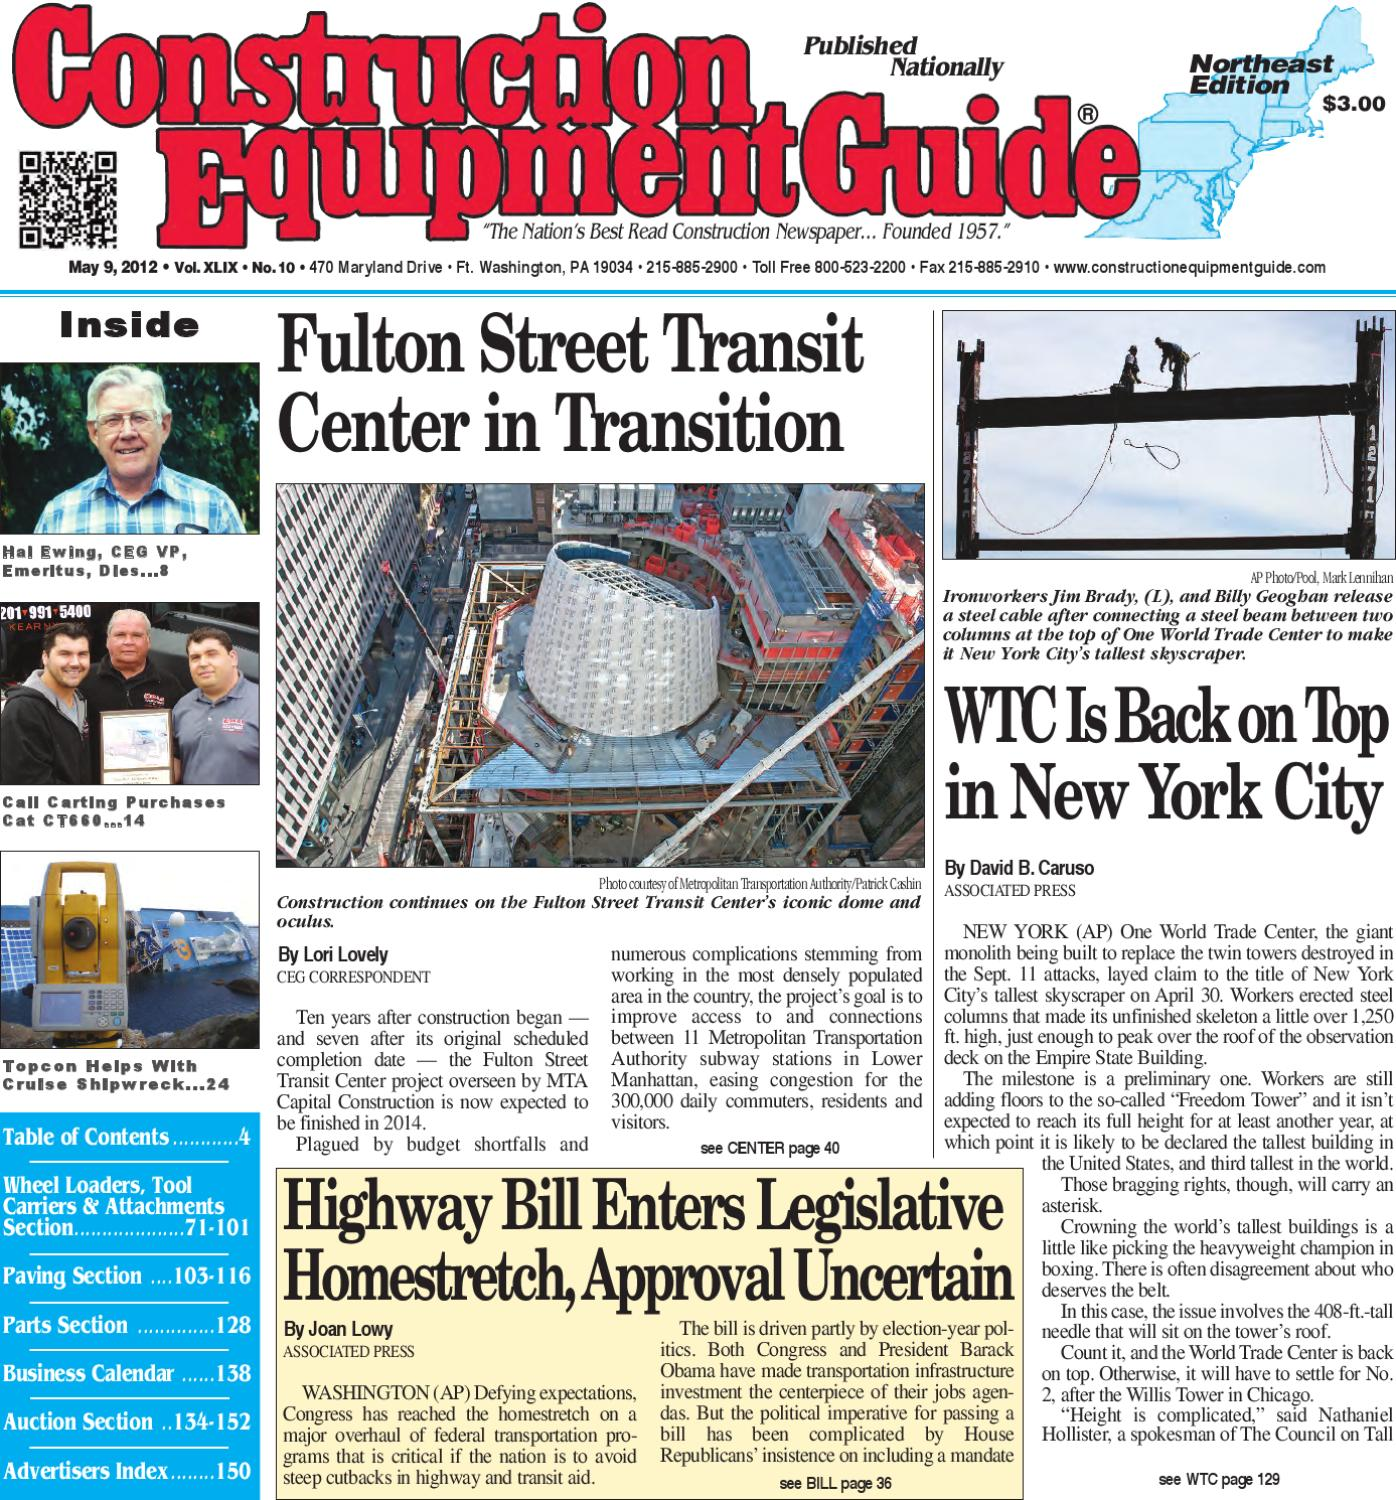 Northeast #10, 2012 by Construction Equipment Guide - issuu